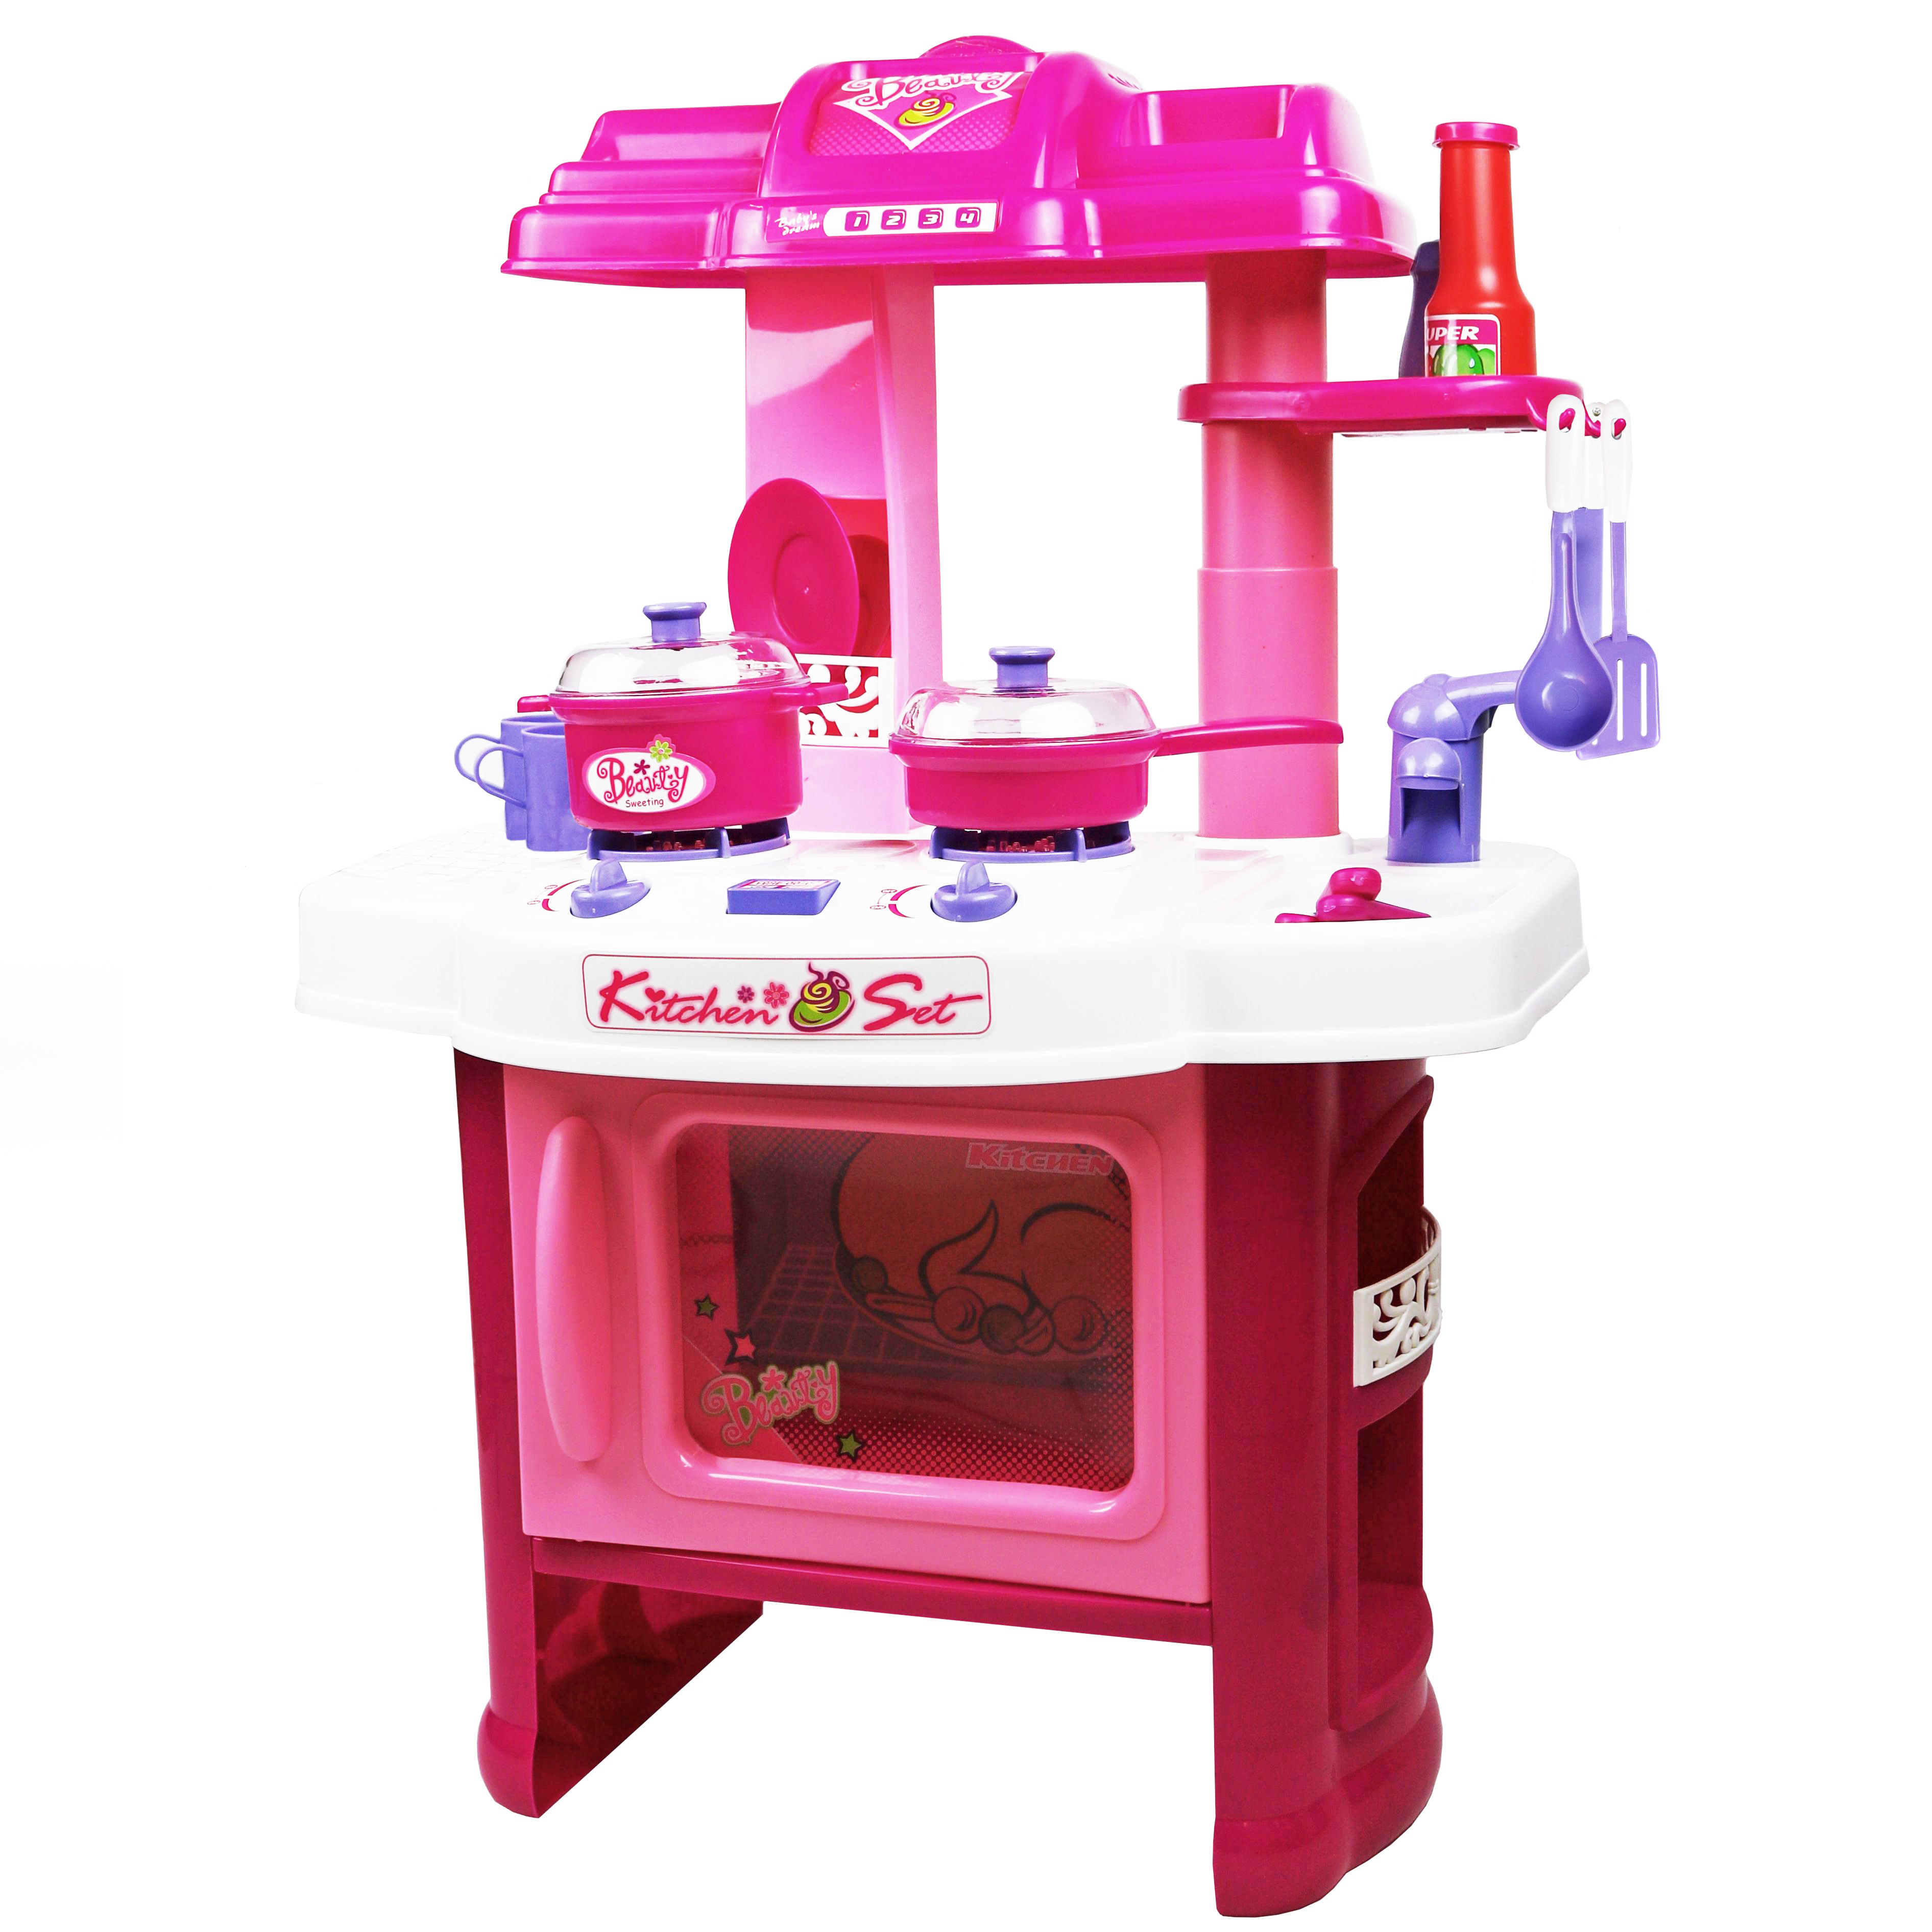 Electronic Kitchen Set: NEW! Childrens Kids Girl Pink Play Electronic Kitchen